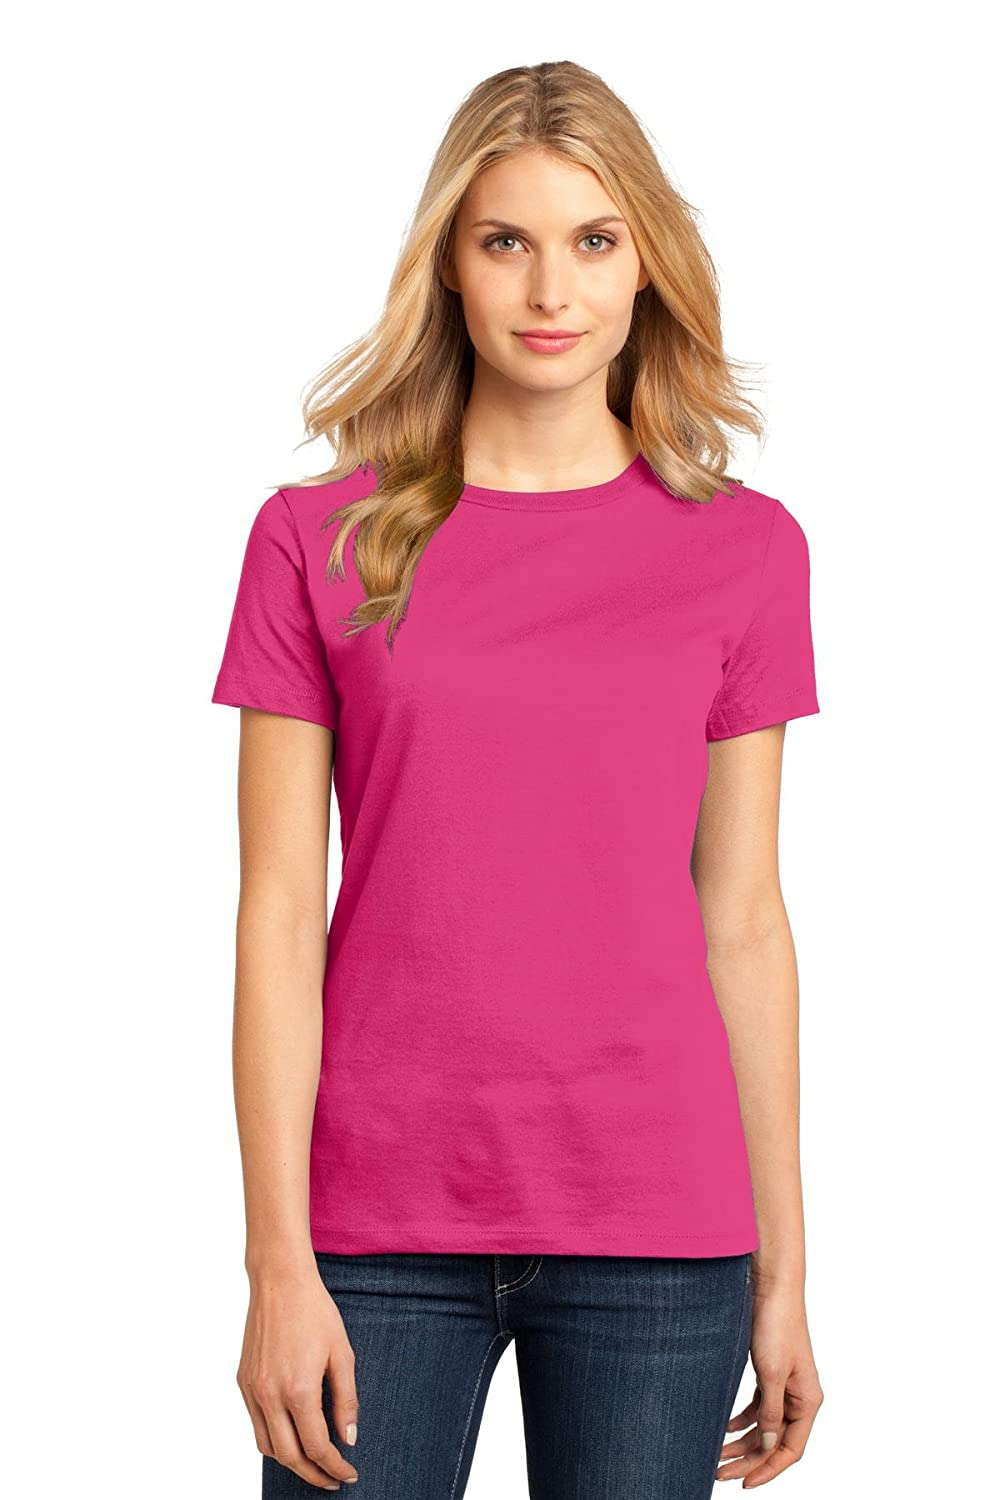 District Threads Women's Perfect Weight Crew Tee